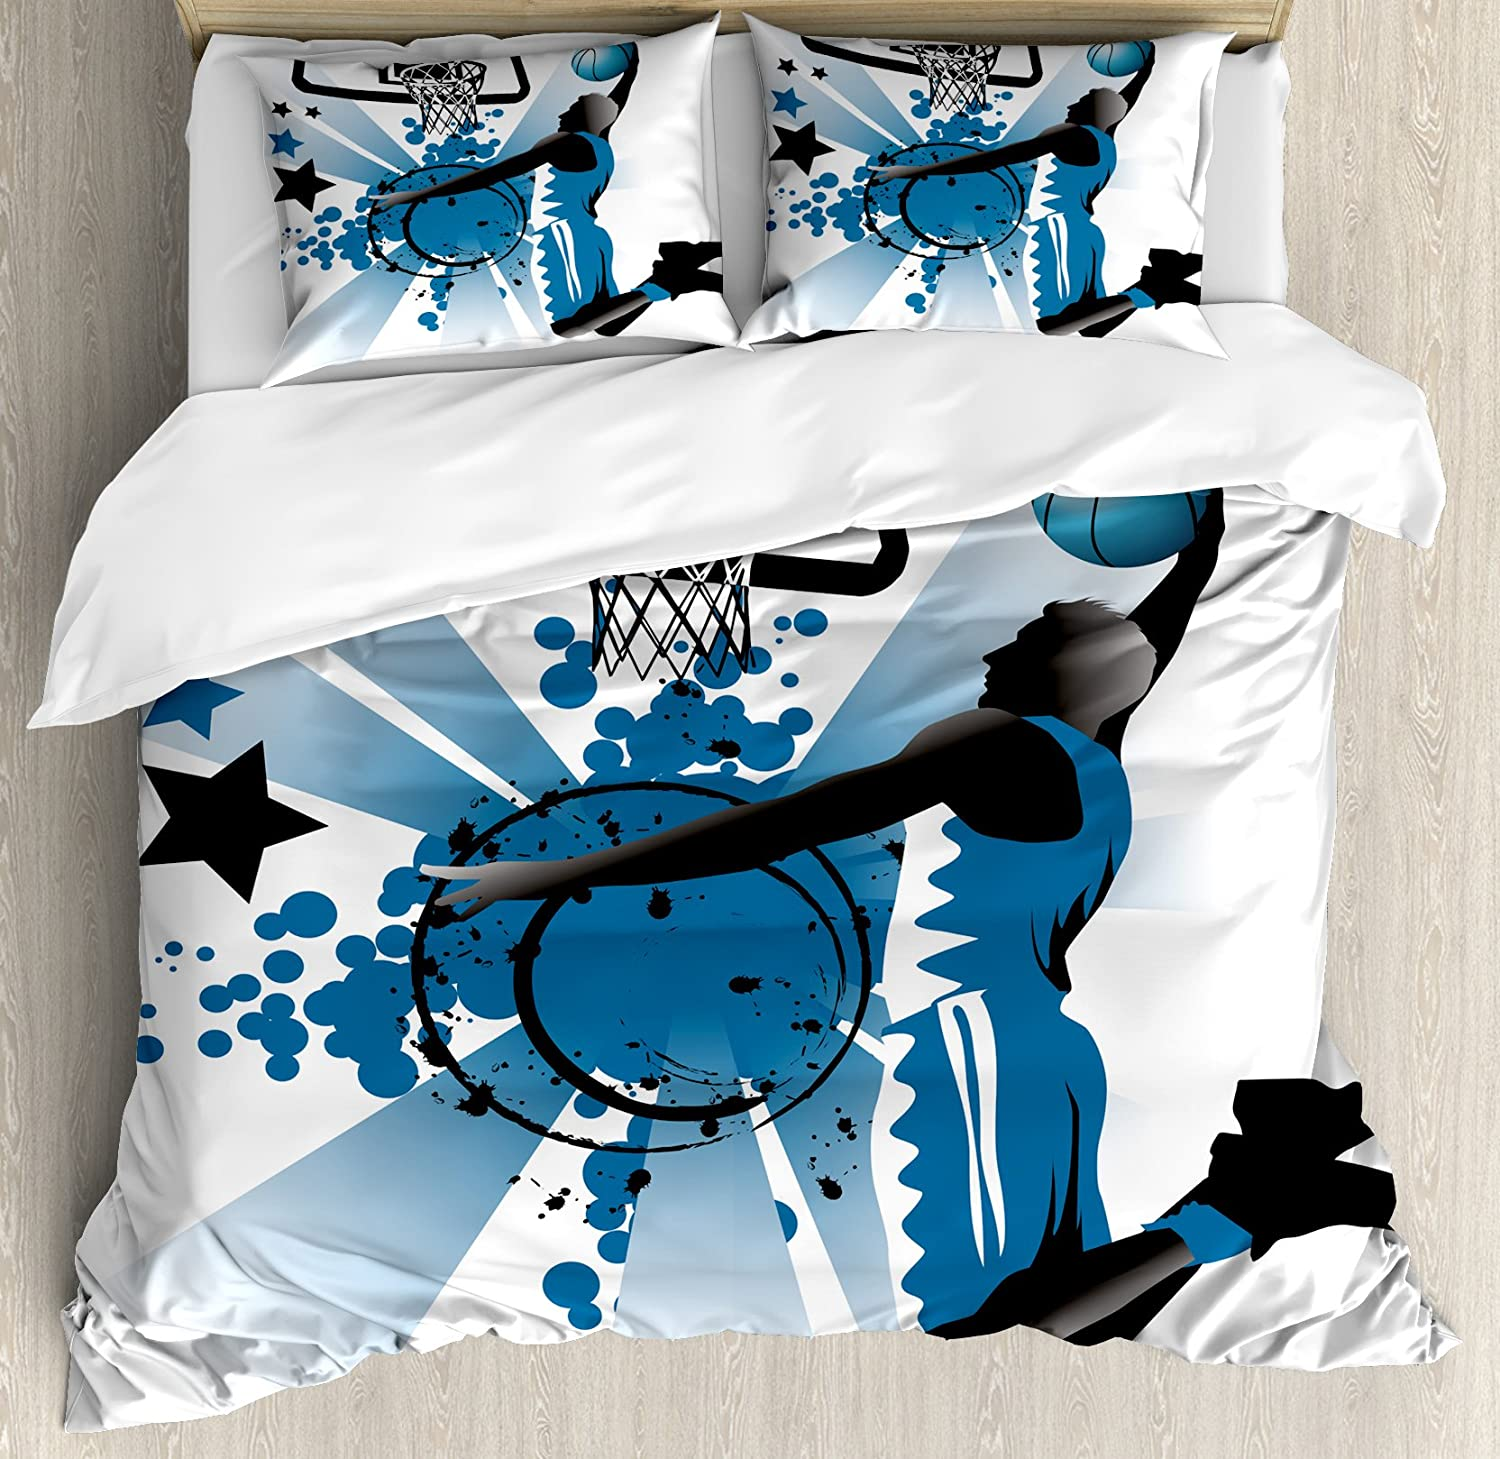 Ambesonne Teen Room Duvet Cover Set, Silhouette of Basketball Player Jumping Success Stars Illustration, Decorative 3 Piece Bedding Set with 2 Pillow Shams, Queen Size, Blue Black